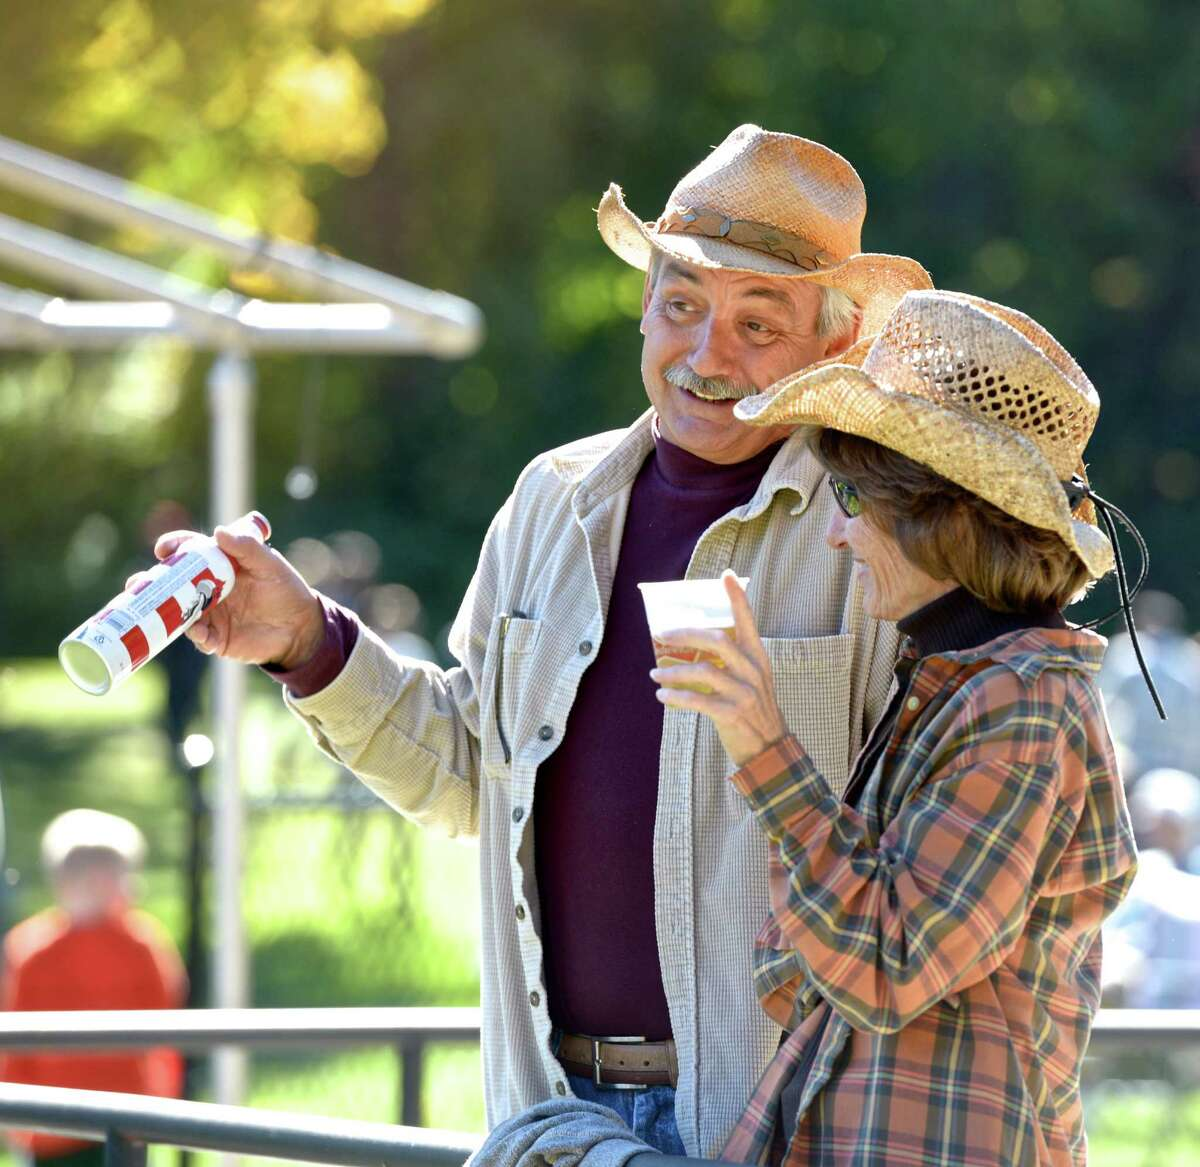 """Joyce Peters, of Patterson, NY, and Michael Geraci, of North Branford, listen to the band """"Forgotten by Friday"""" at Ives Concert Park, on Saturday, October 10, 2015, in Danbury, Conn. Peters and Geraci were on a first date at the 1st Annual """"Harvest Jam"""" festival at the park."""